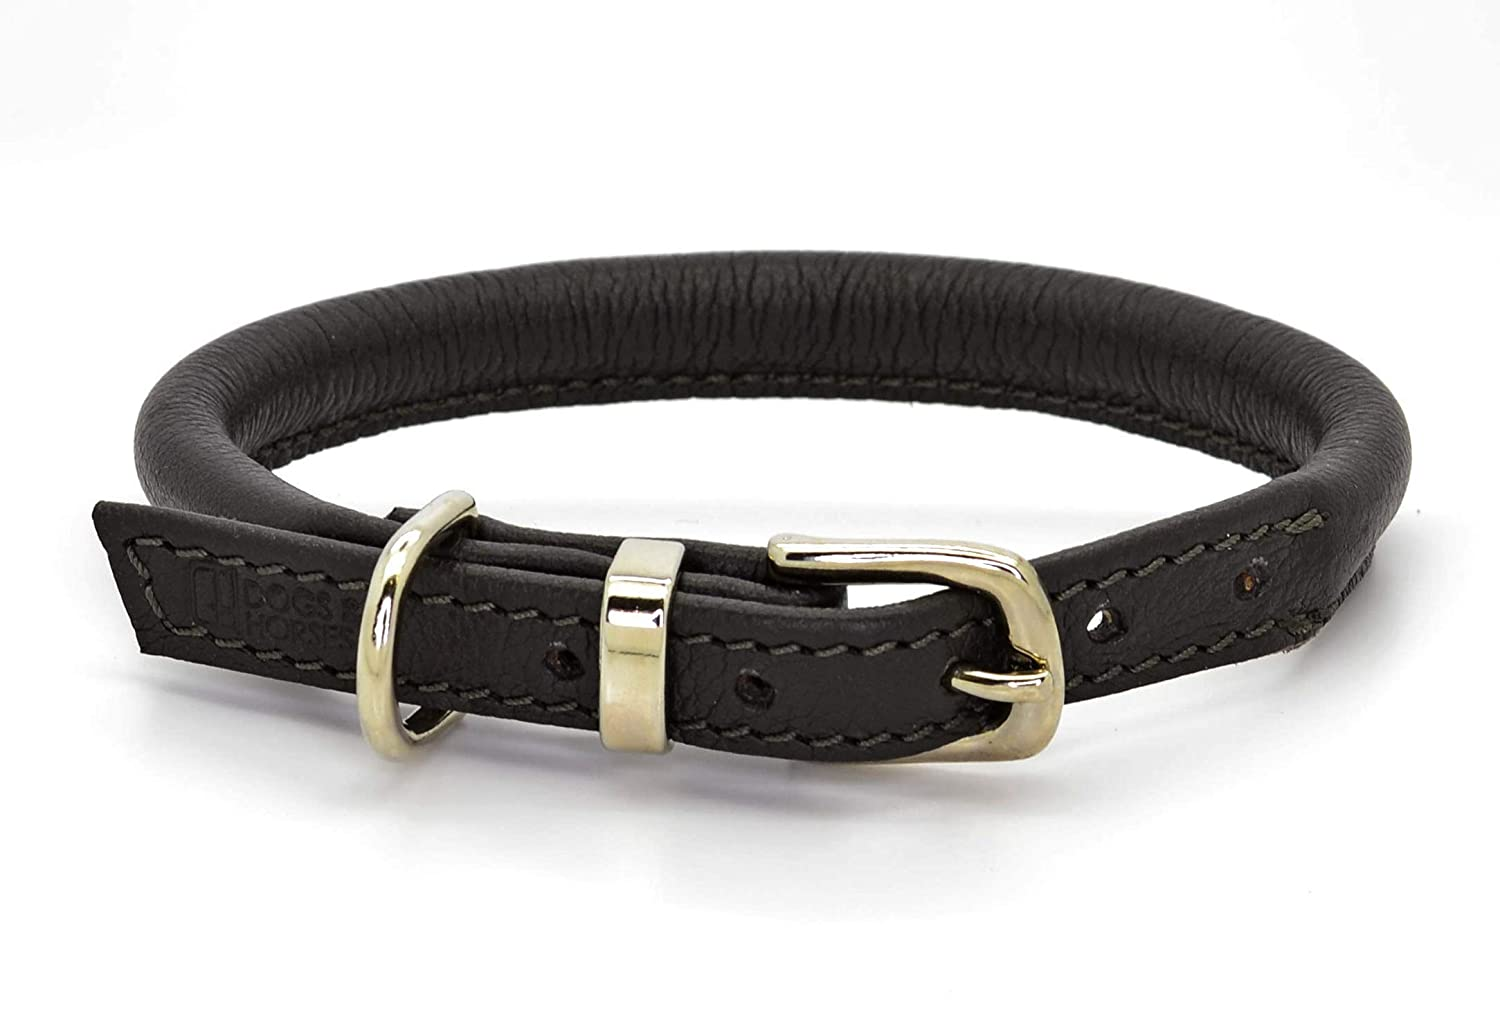 Brown with Silver XL 65cm (neck 5260cm)Dogs & Horses Rolled Leather Dog Collar and Lead Set (XS 37cm (neck 2432cm), Yellow)